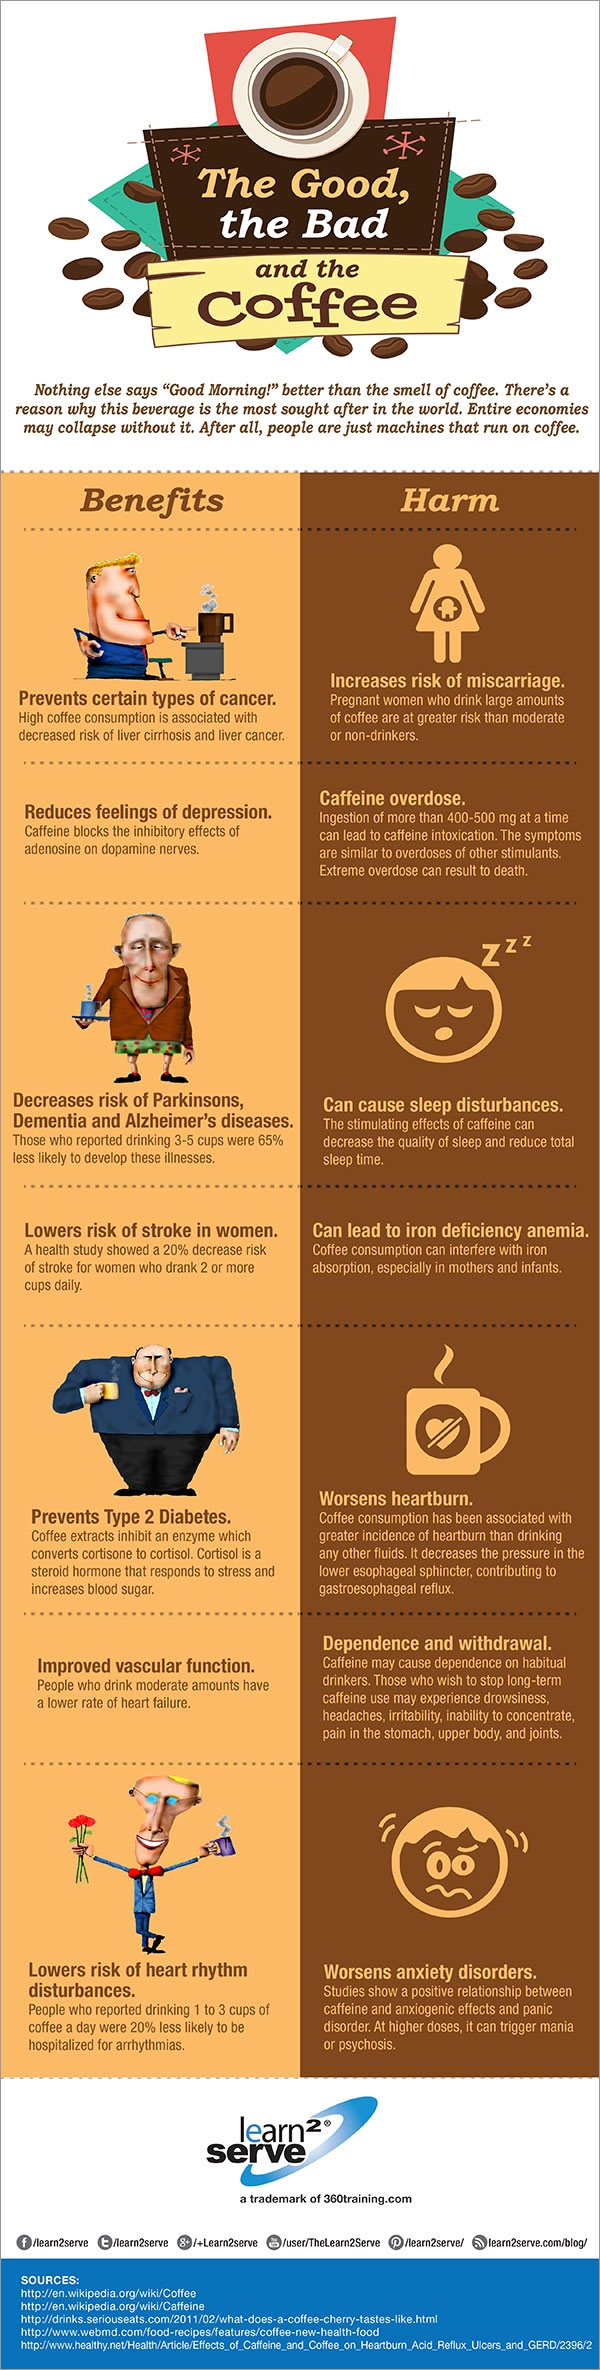 the pro's and con's of coffee drinking